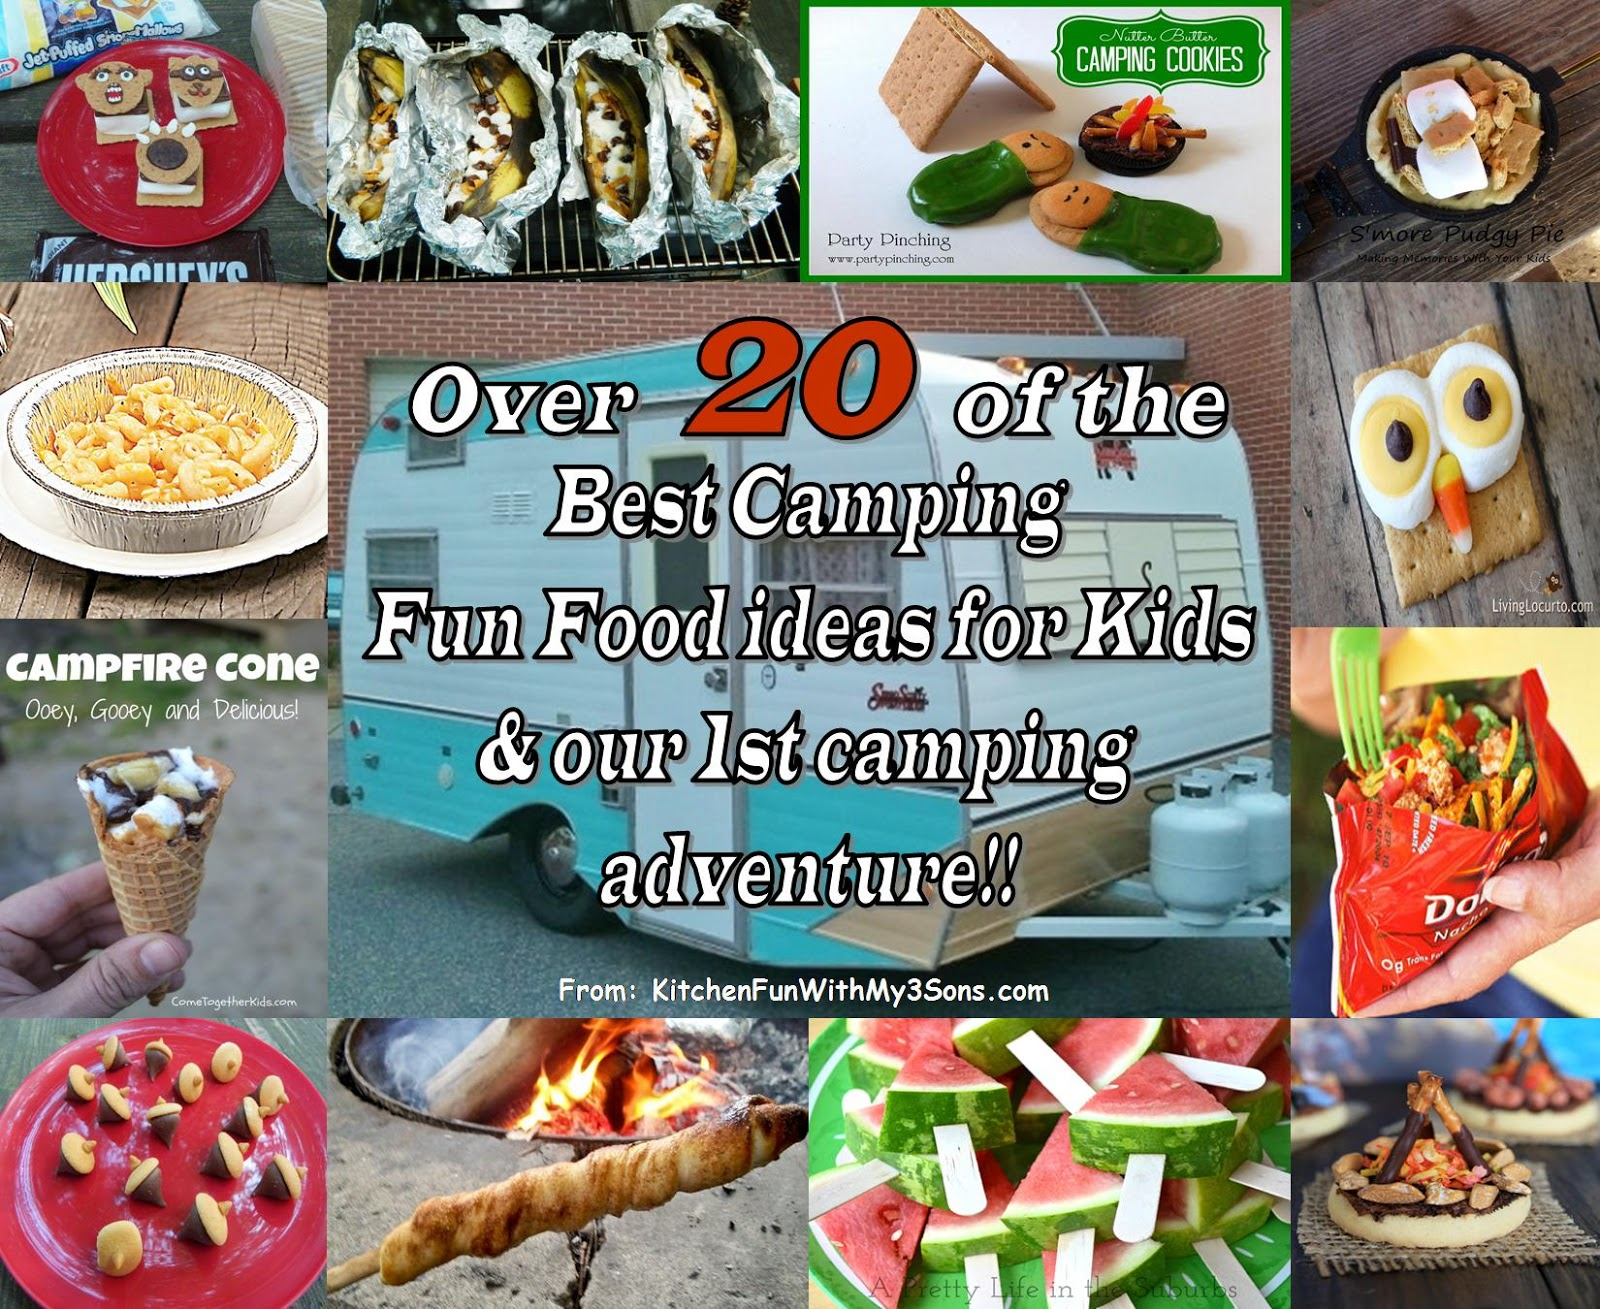 our 1st camping adventure and over 20 of the best camping fun food